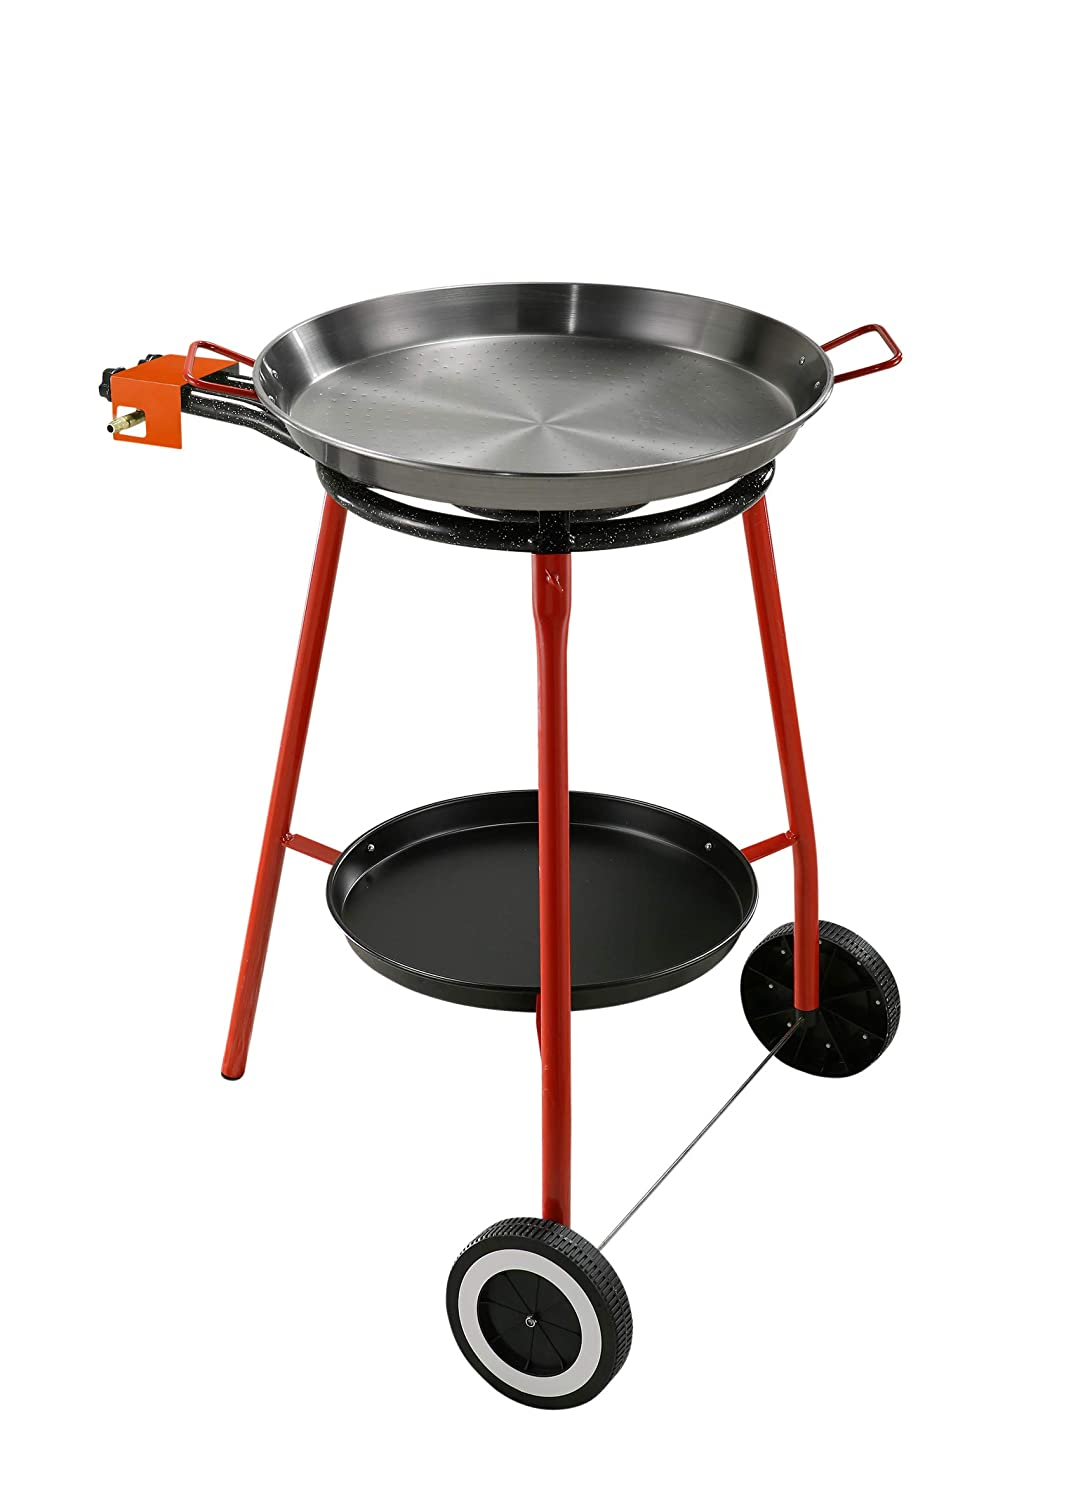 Complete Paella Kit Set for the Kitchen Outdoor, particularly suitable for the preparation of Paella. The Kit Includes: Stove with Power Supply to Gas (LPG) to Two Independent Burners, Support Three Feet, Coated Steel Frying Pan in Ferr Reber